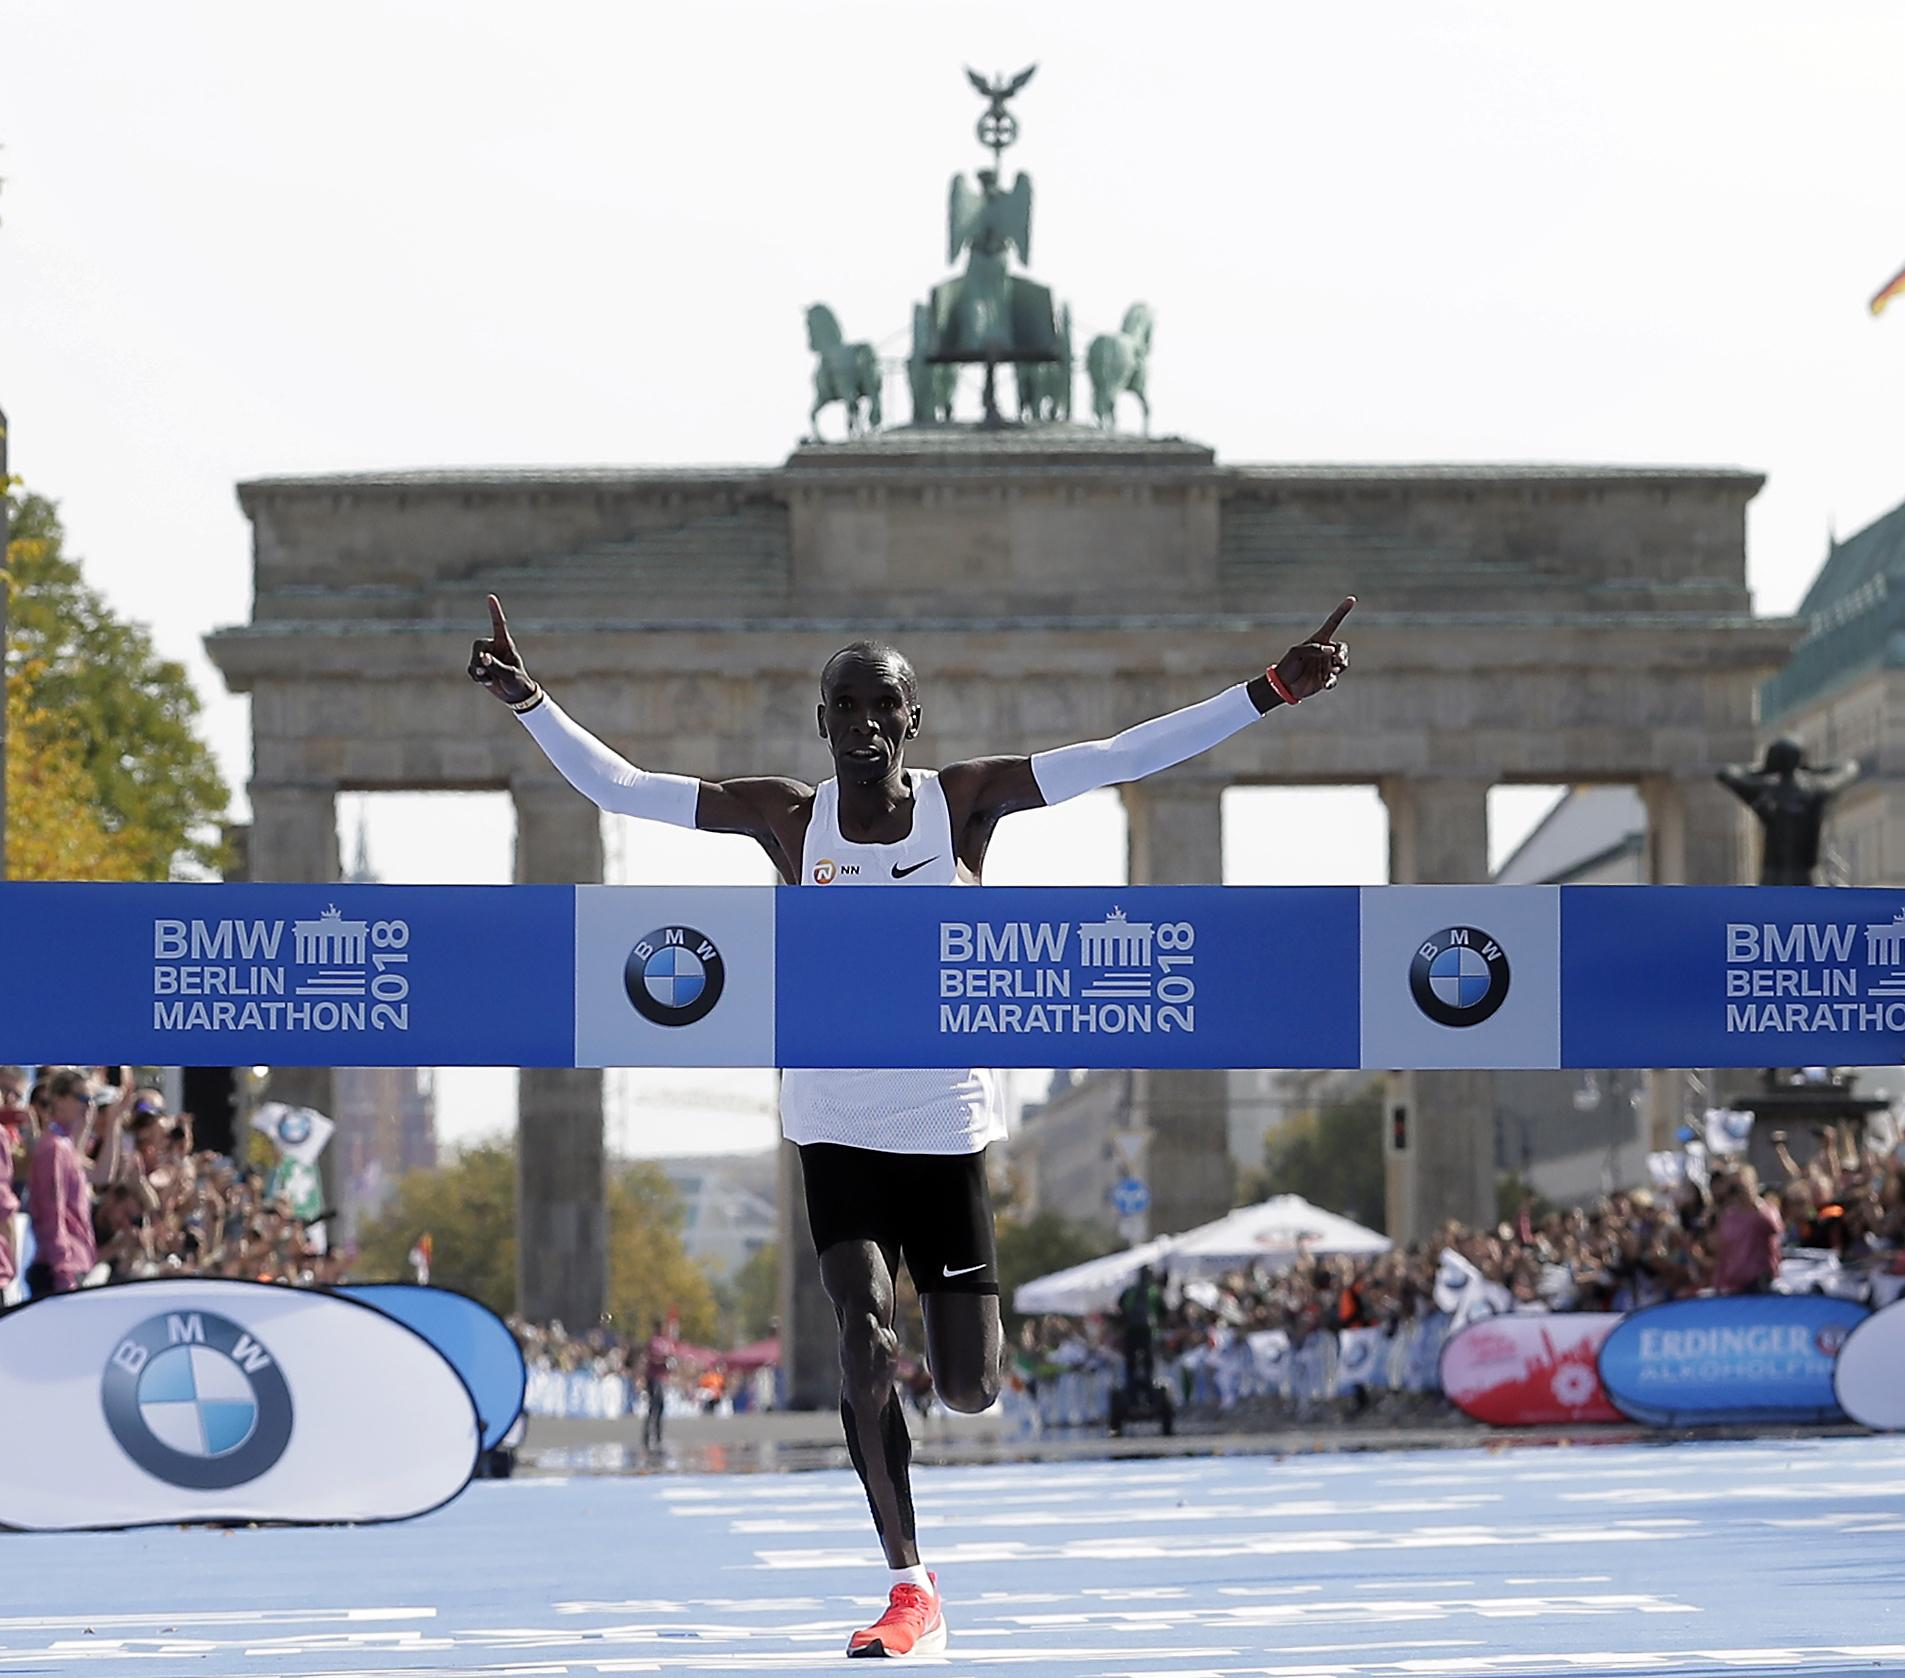 Kipchoge spreads his arms in celebration at the finish line outside the Brandenburg Gate in Berlin